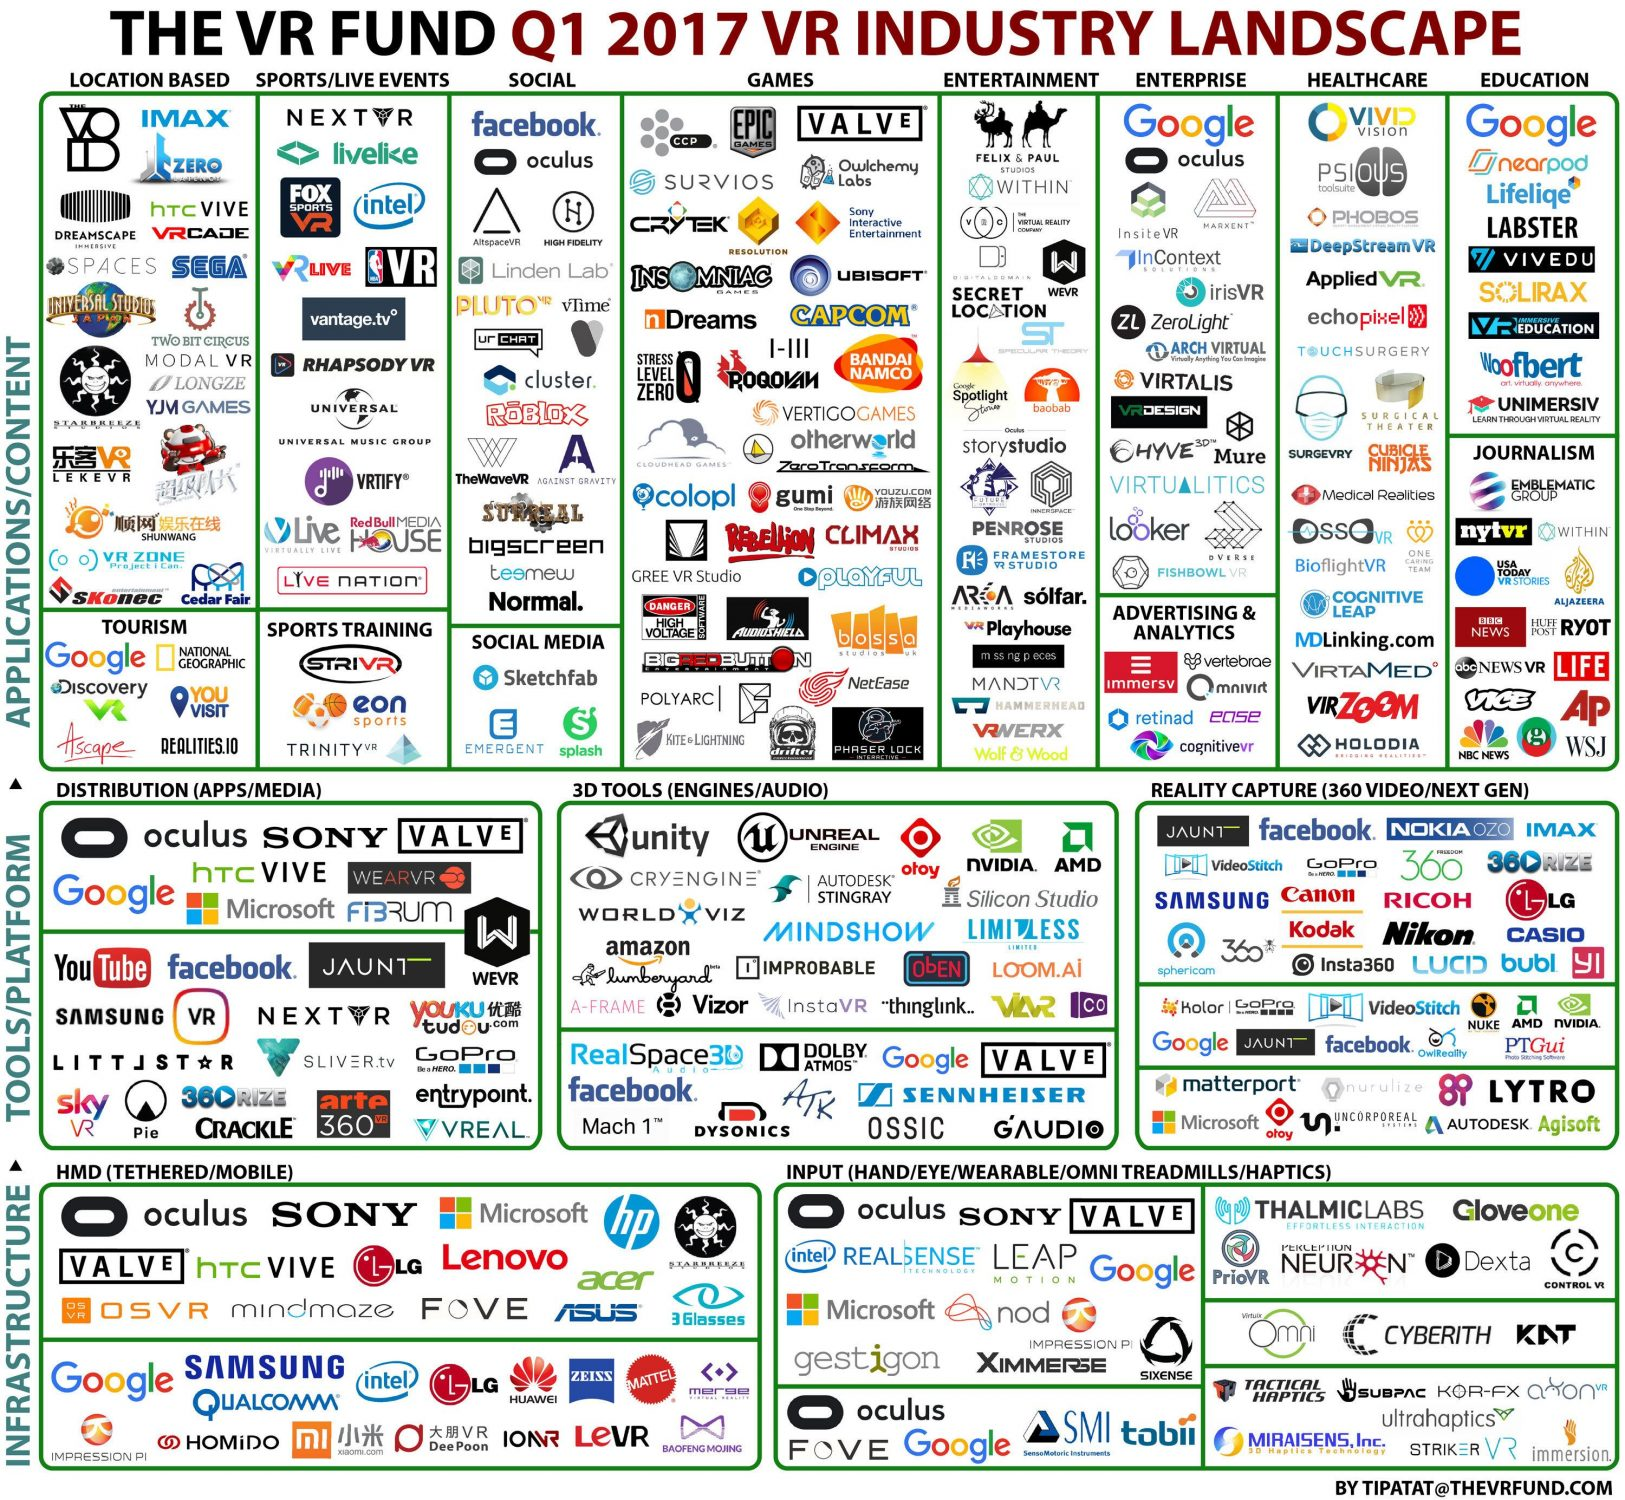 La industria de la realidad virtual 2017 por The VR FUND